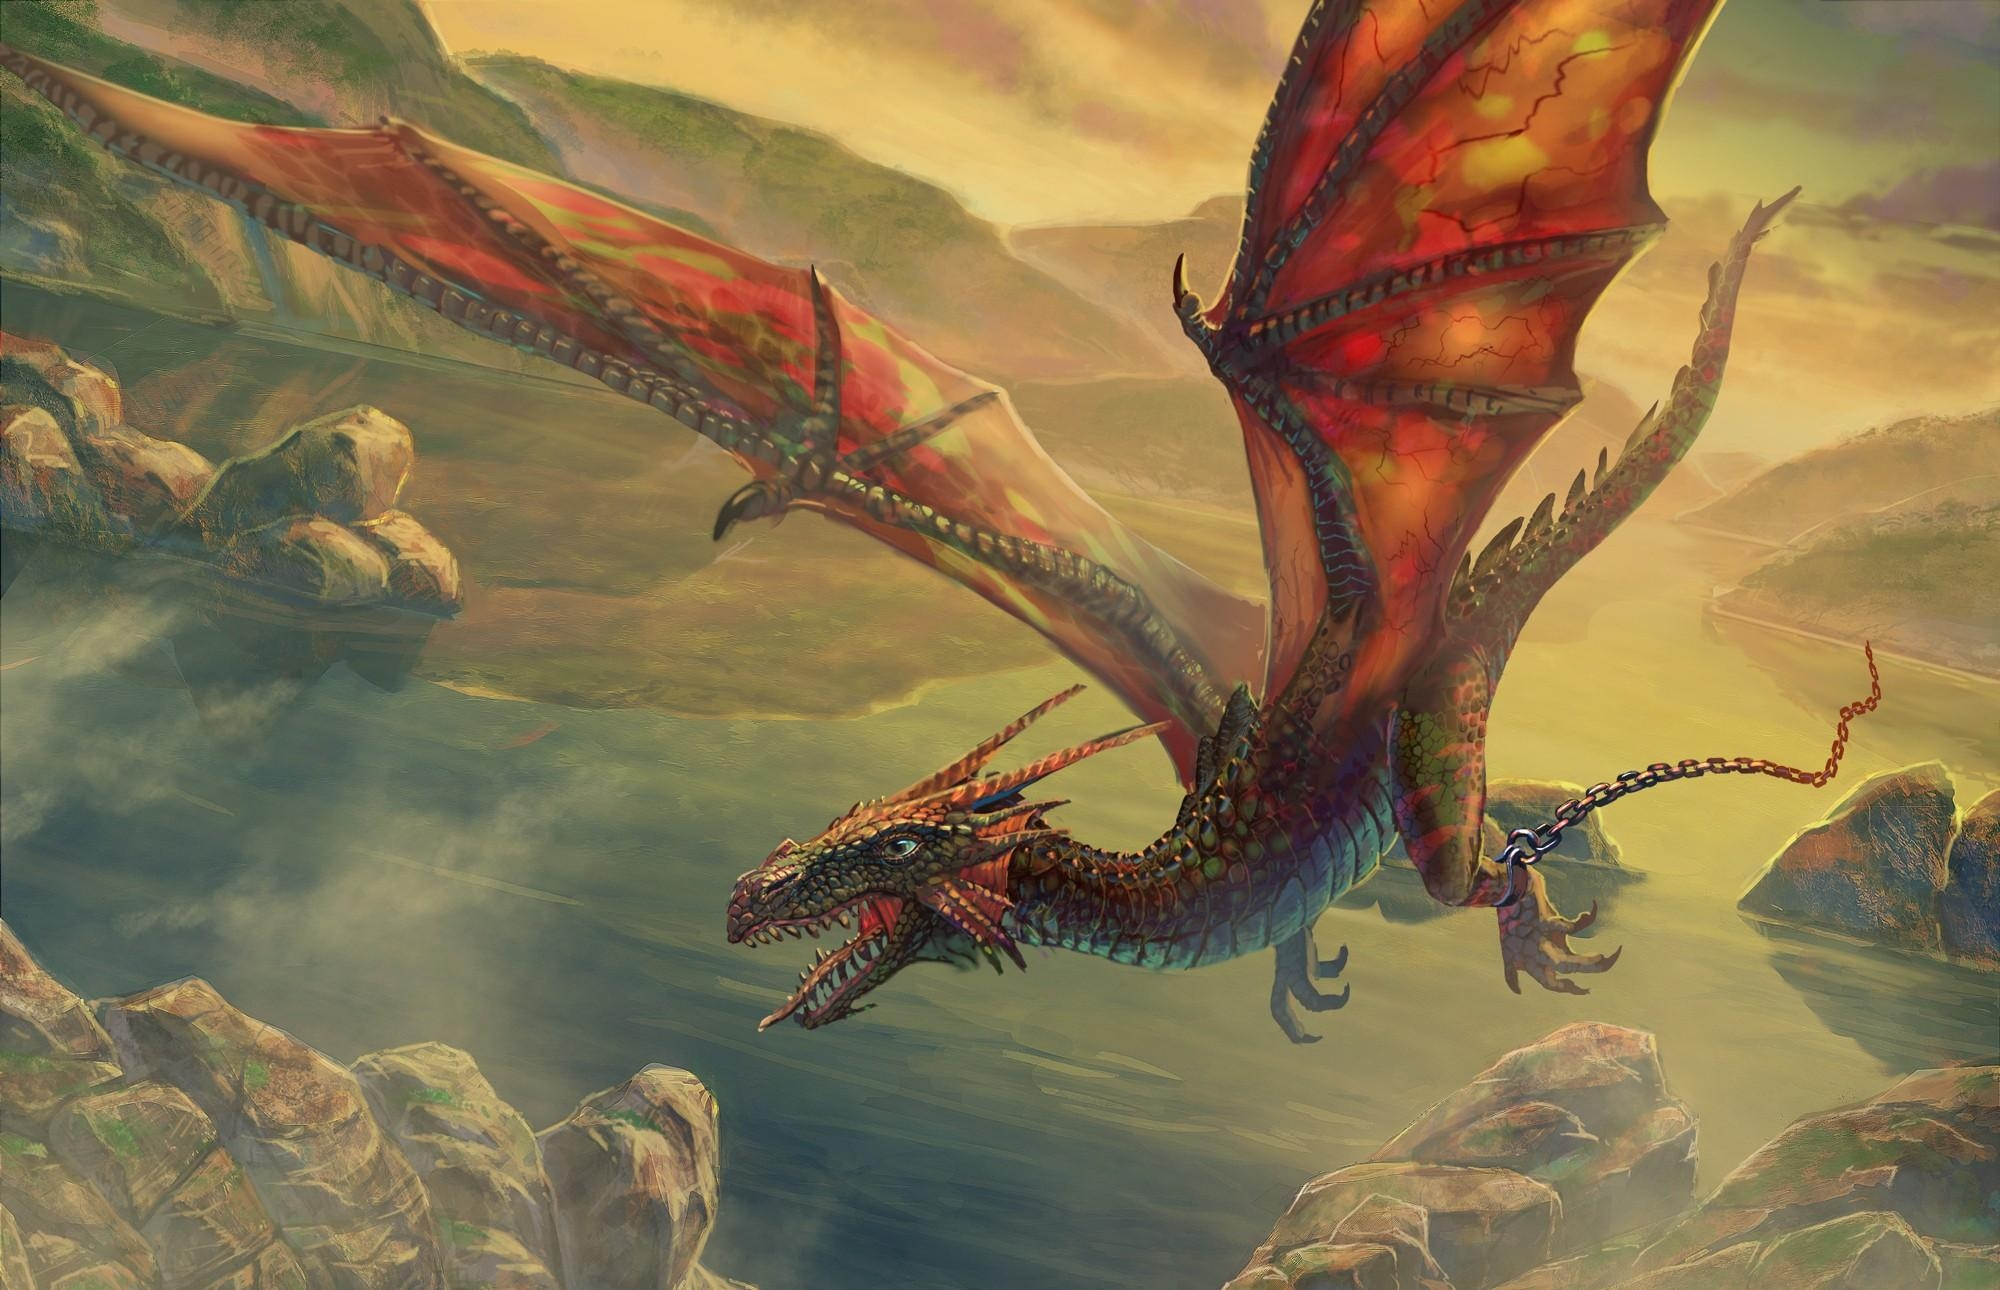 110361 download wallpaper Fantasy, Dragon, Flight, Chain, Rocks screensavers and pictures for free